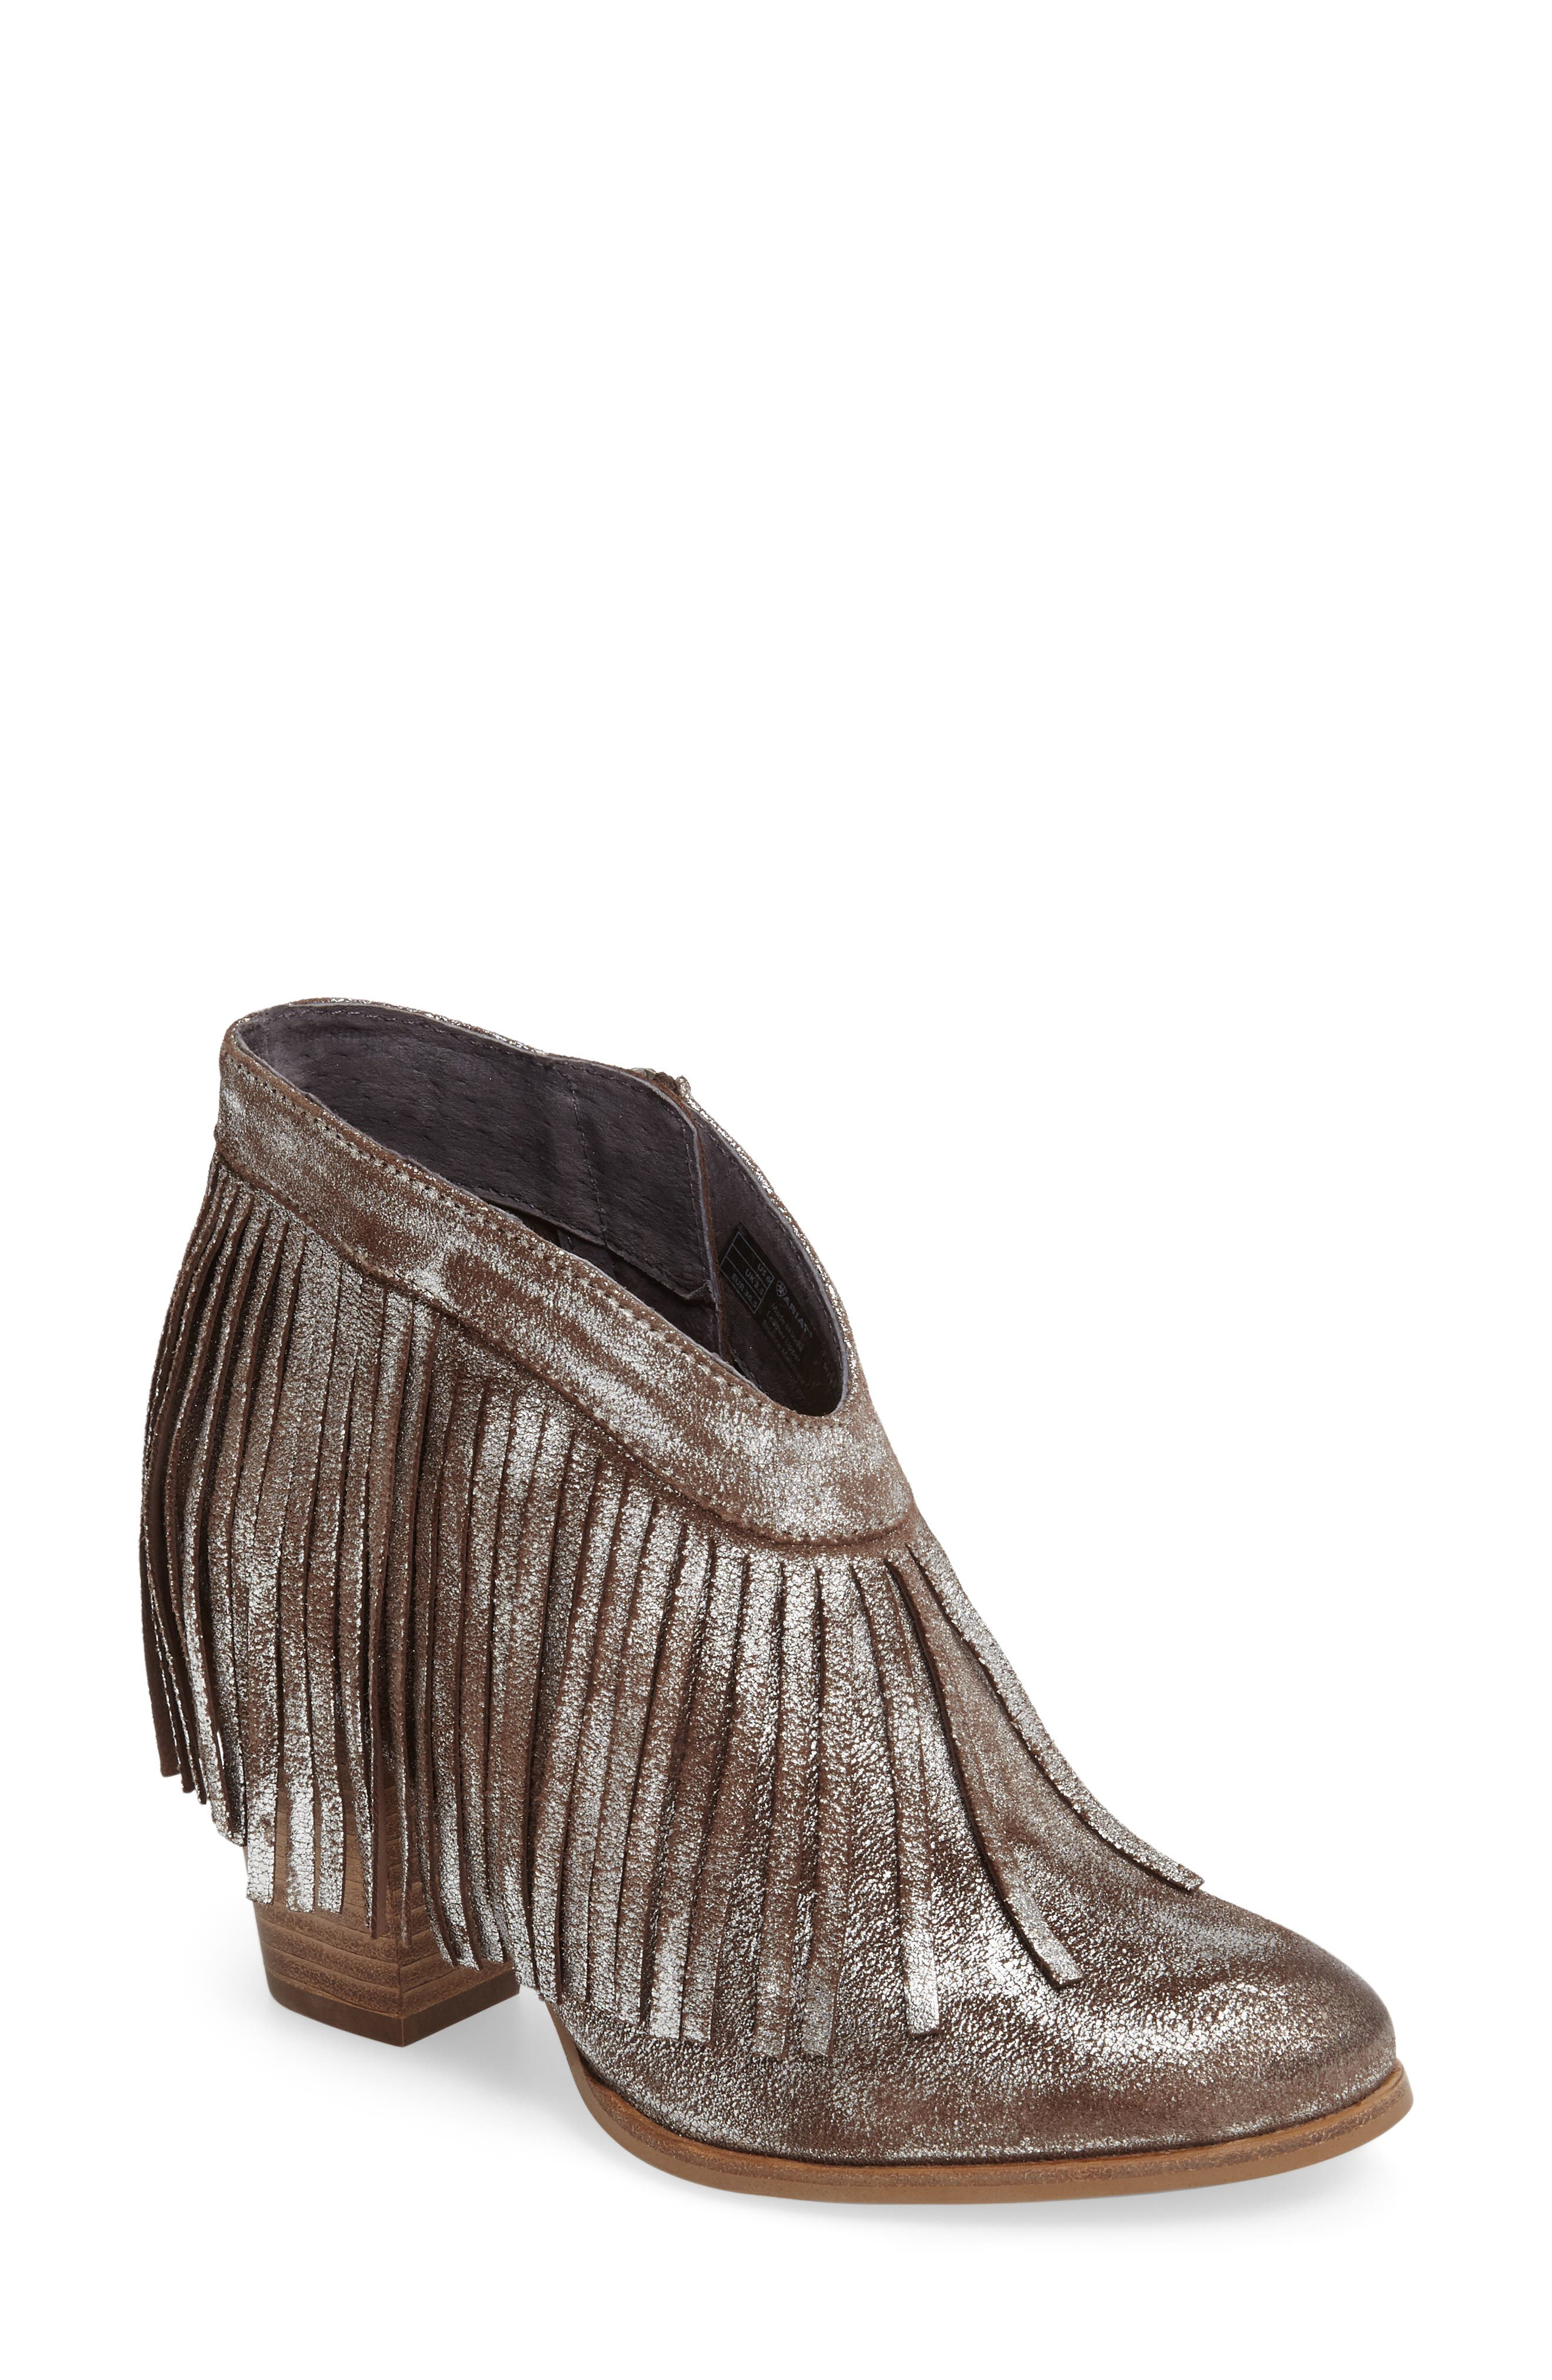 Unbridled Layla Fringed Bootie,                             Main thumbnail 1, color,                             040